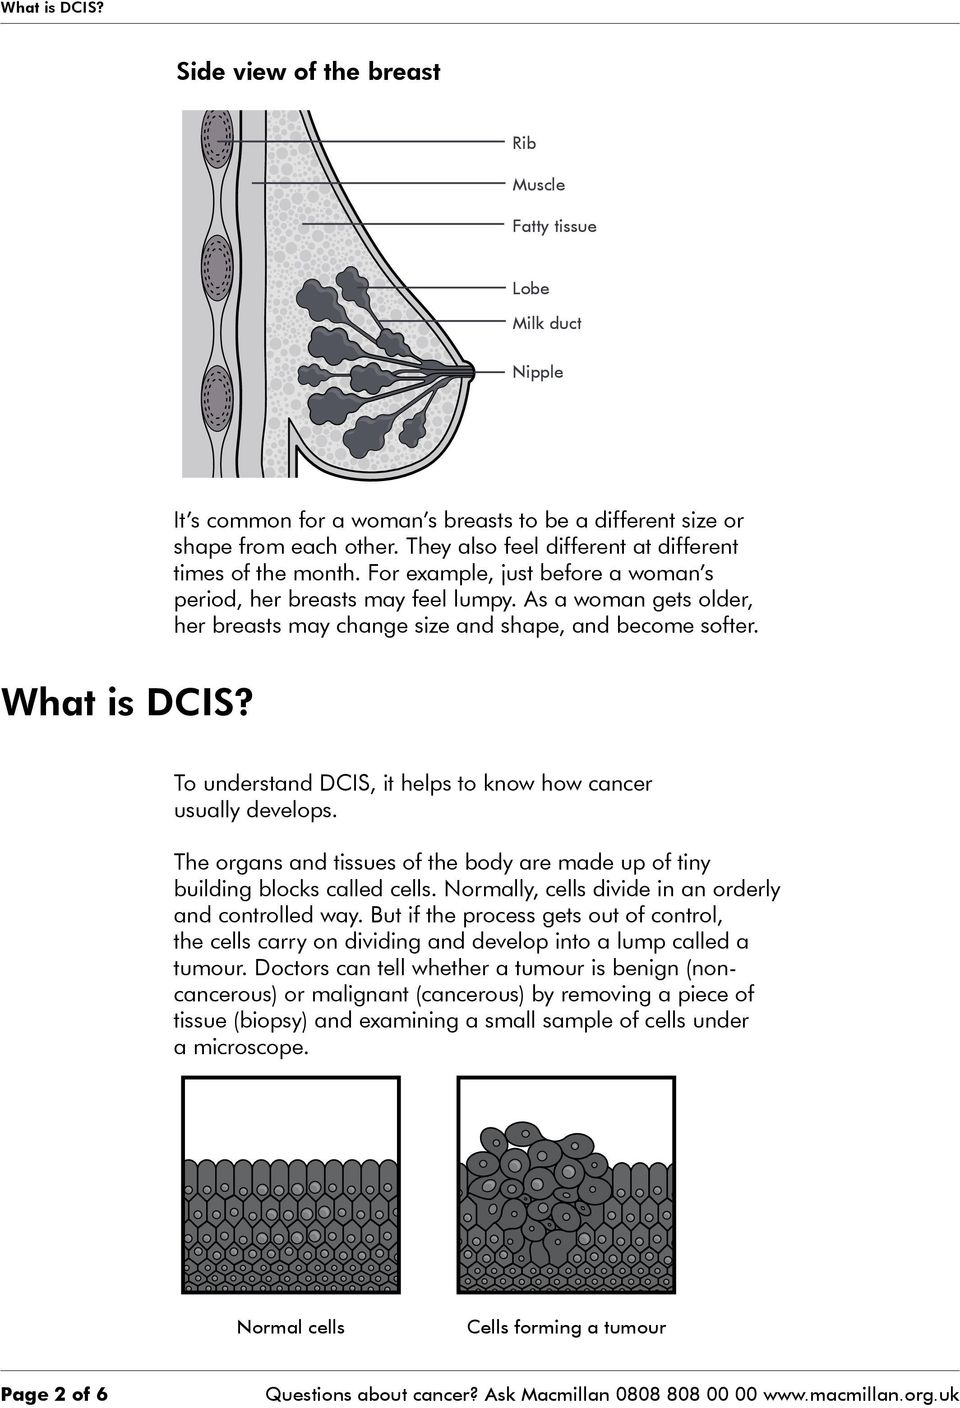 As a woman gets older, her breasts may change size and shape, and become softer. What is DCIS? To understand DCIS, it helps to know how cancer usually develops.